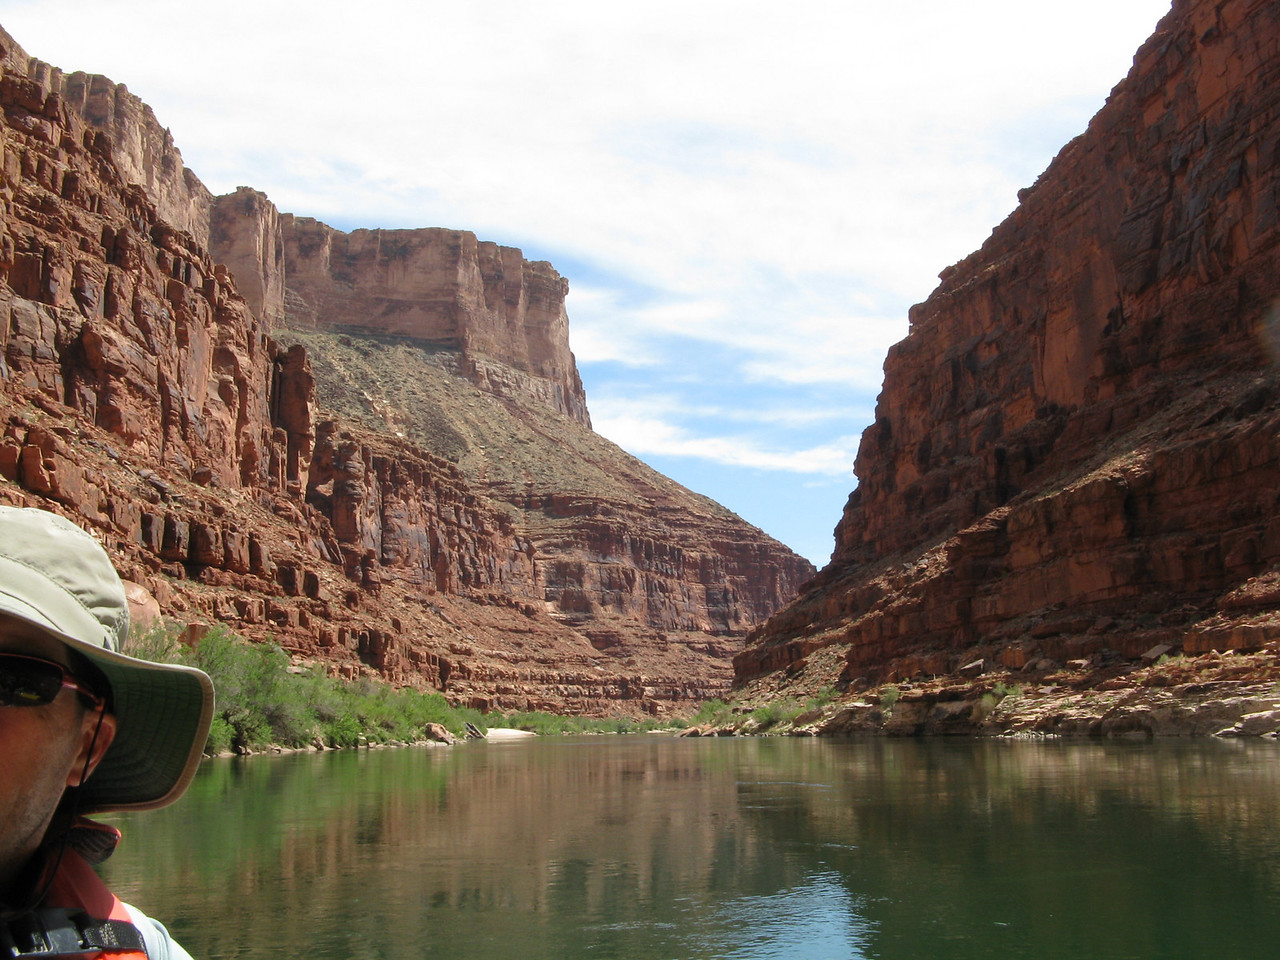 About mile 19: As we continue to head downstream in Marble Canyon, the water is calm and flat with some reflections on the water.